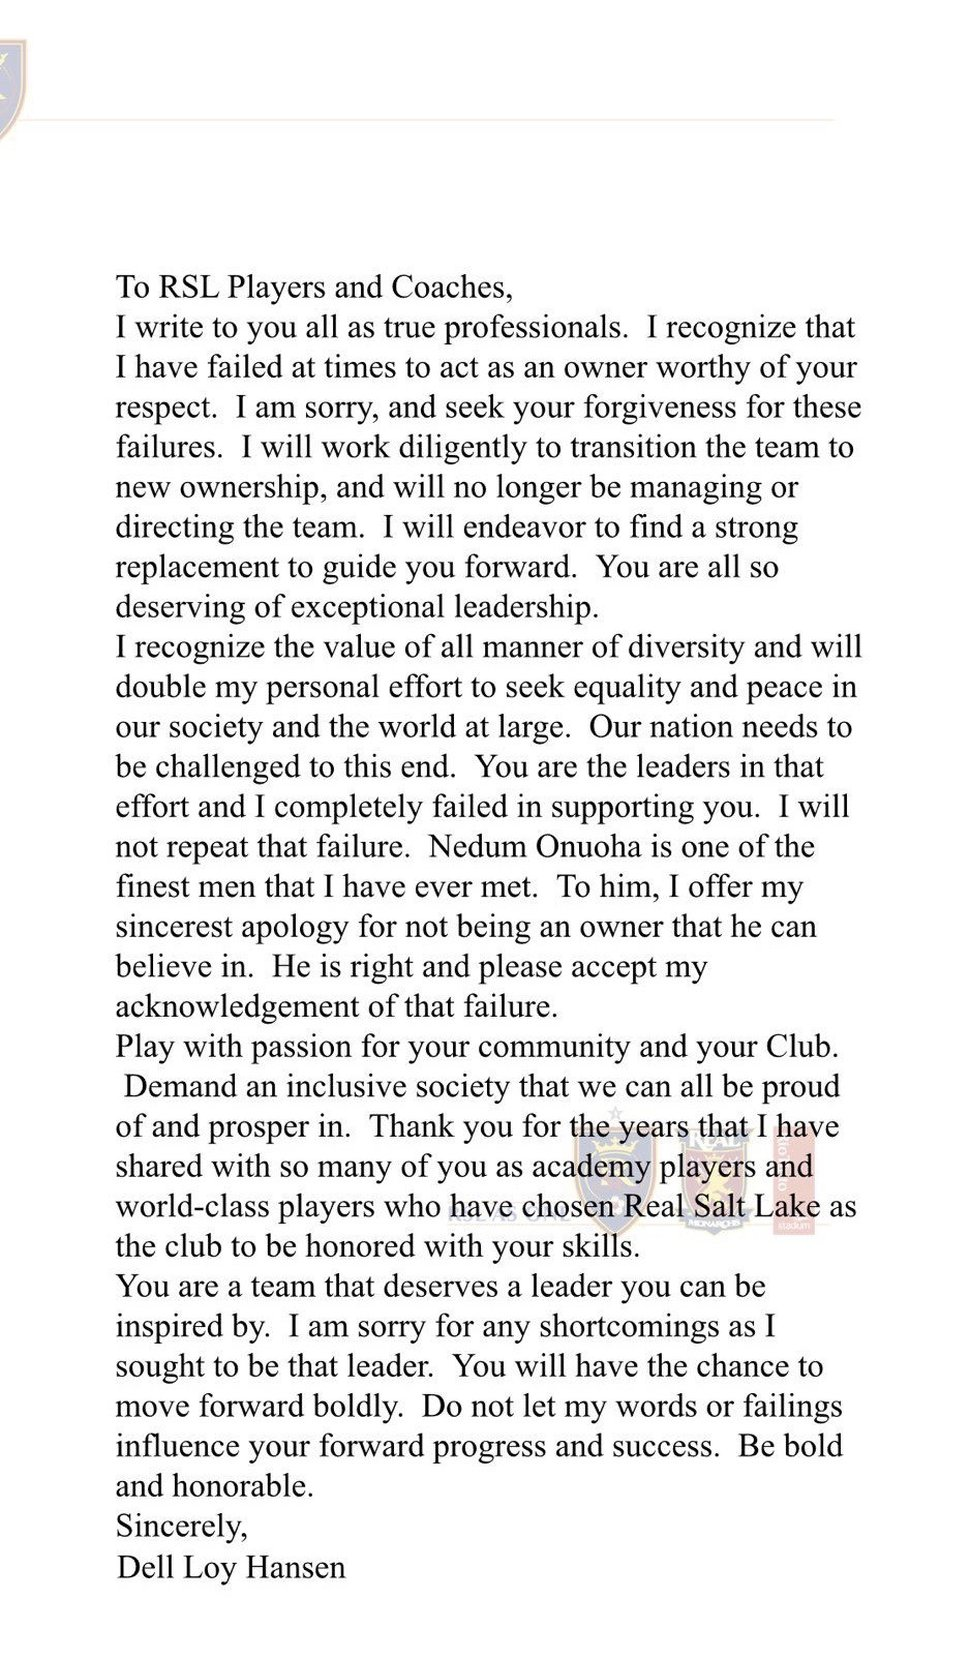 Dell Loy Hansen sent this letter to Real Salt Lake players and coaches Sunday morning.